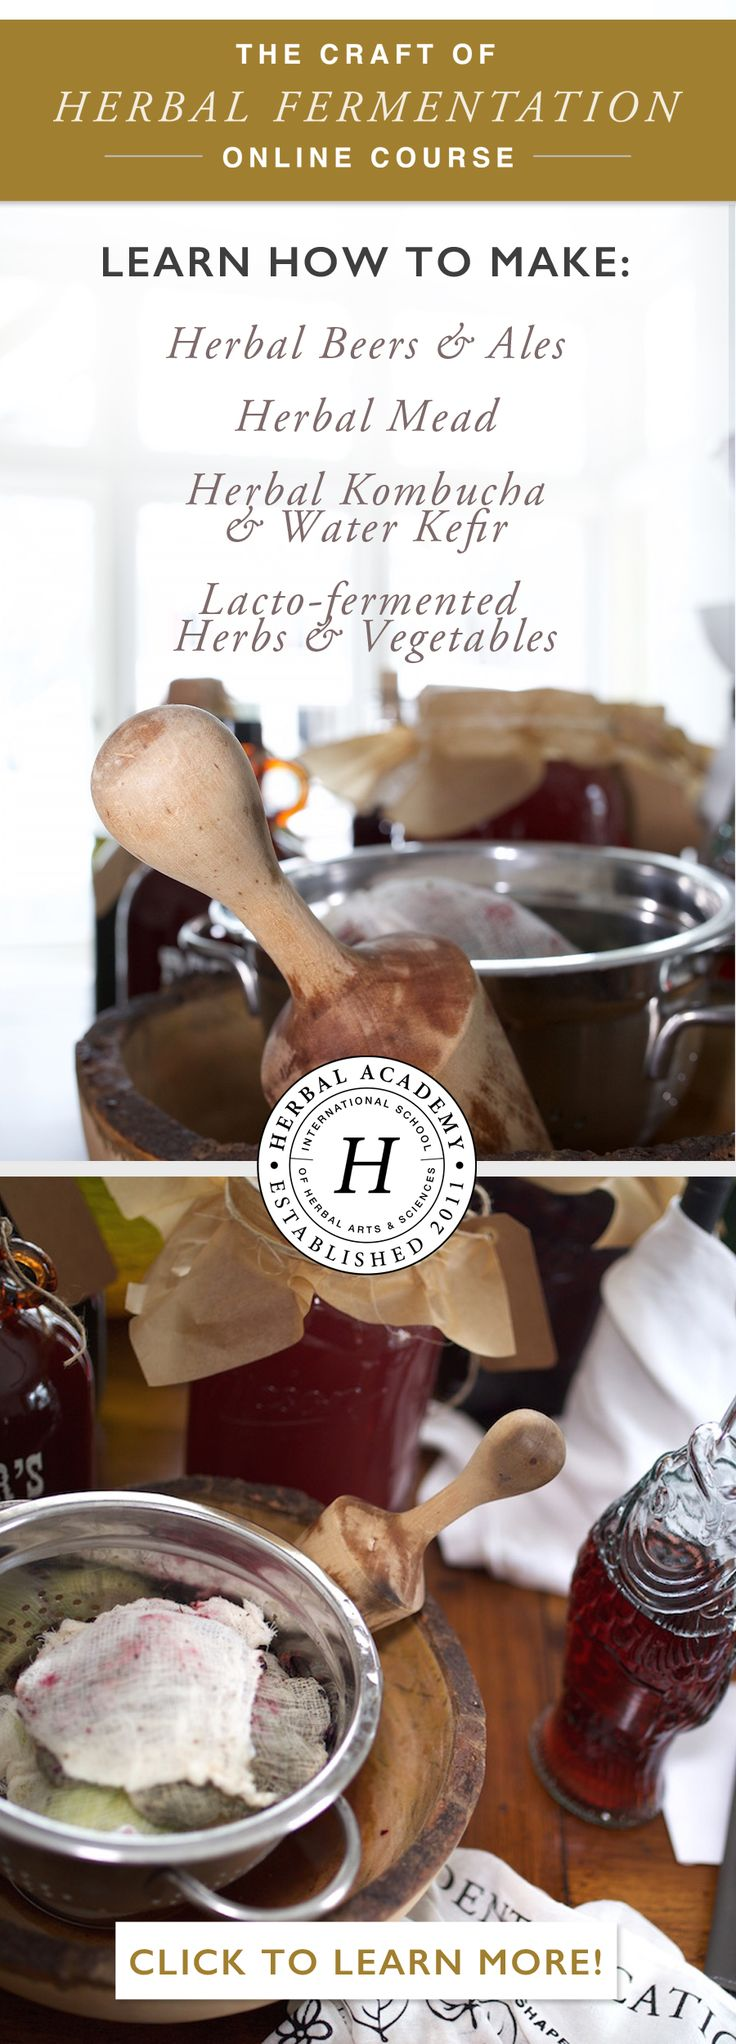 Learn how to make your own herbal beers and ales, mead, kombucha, and more!